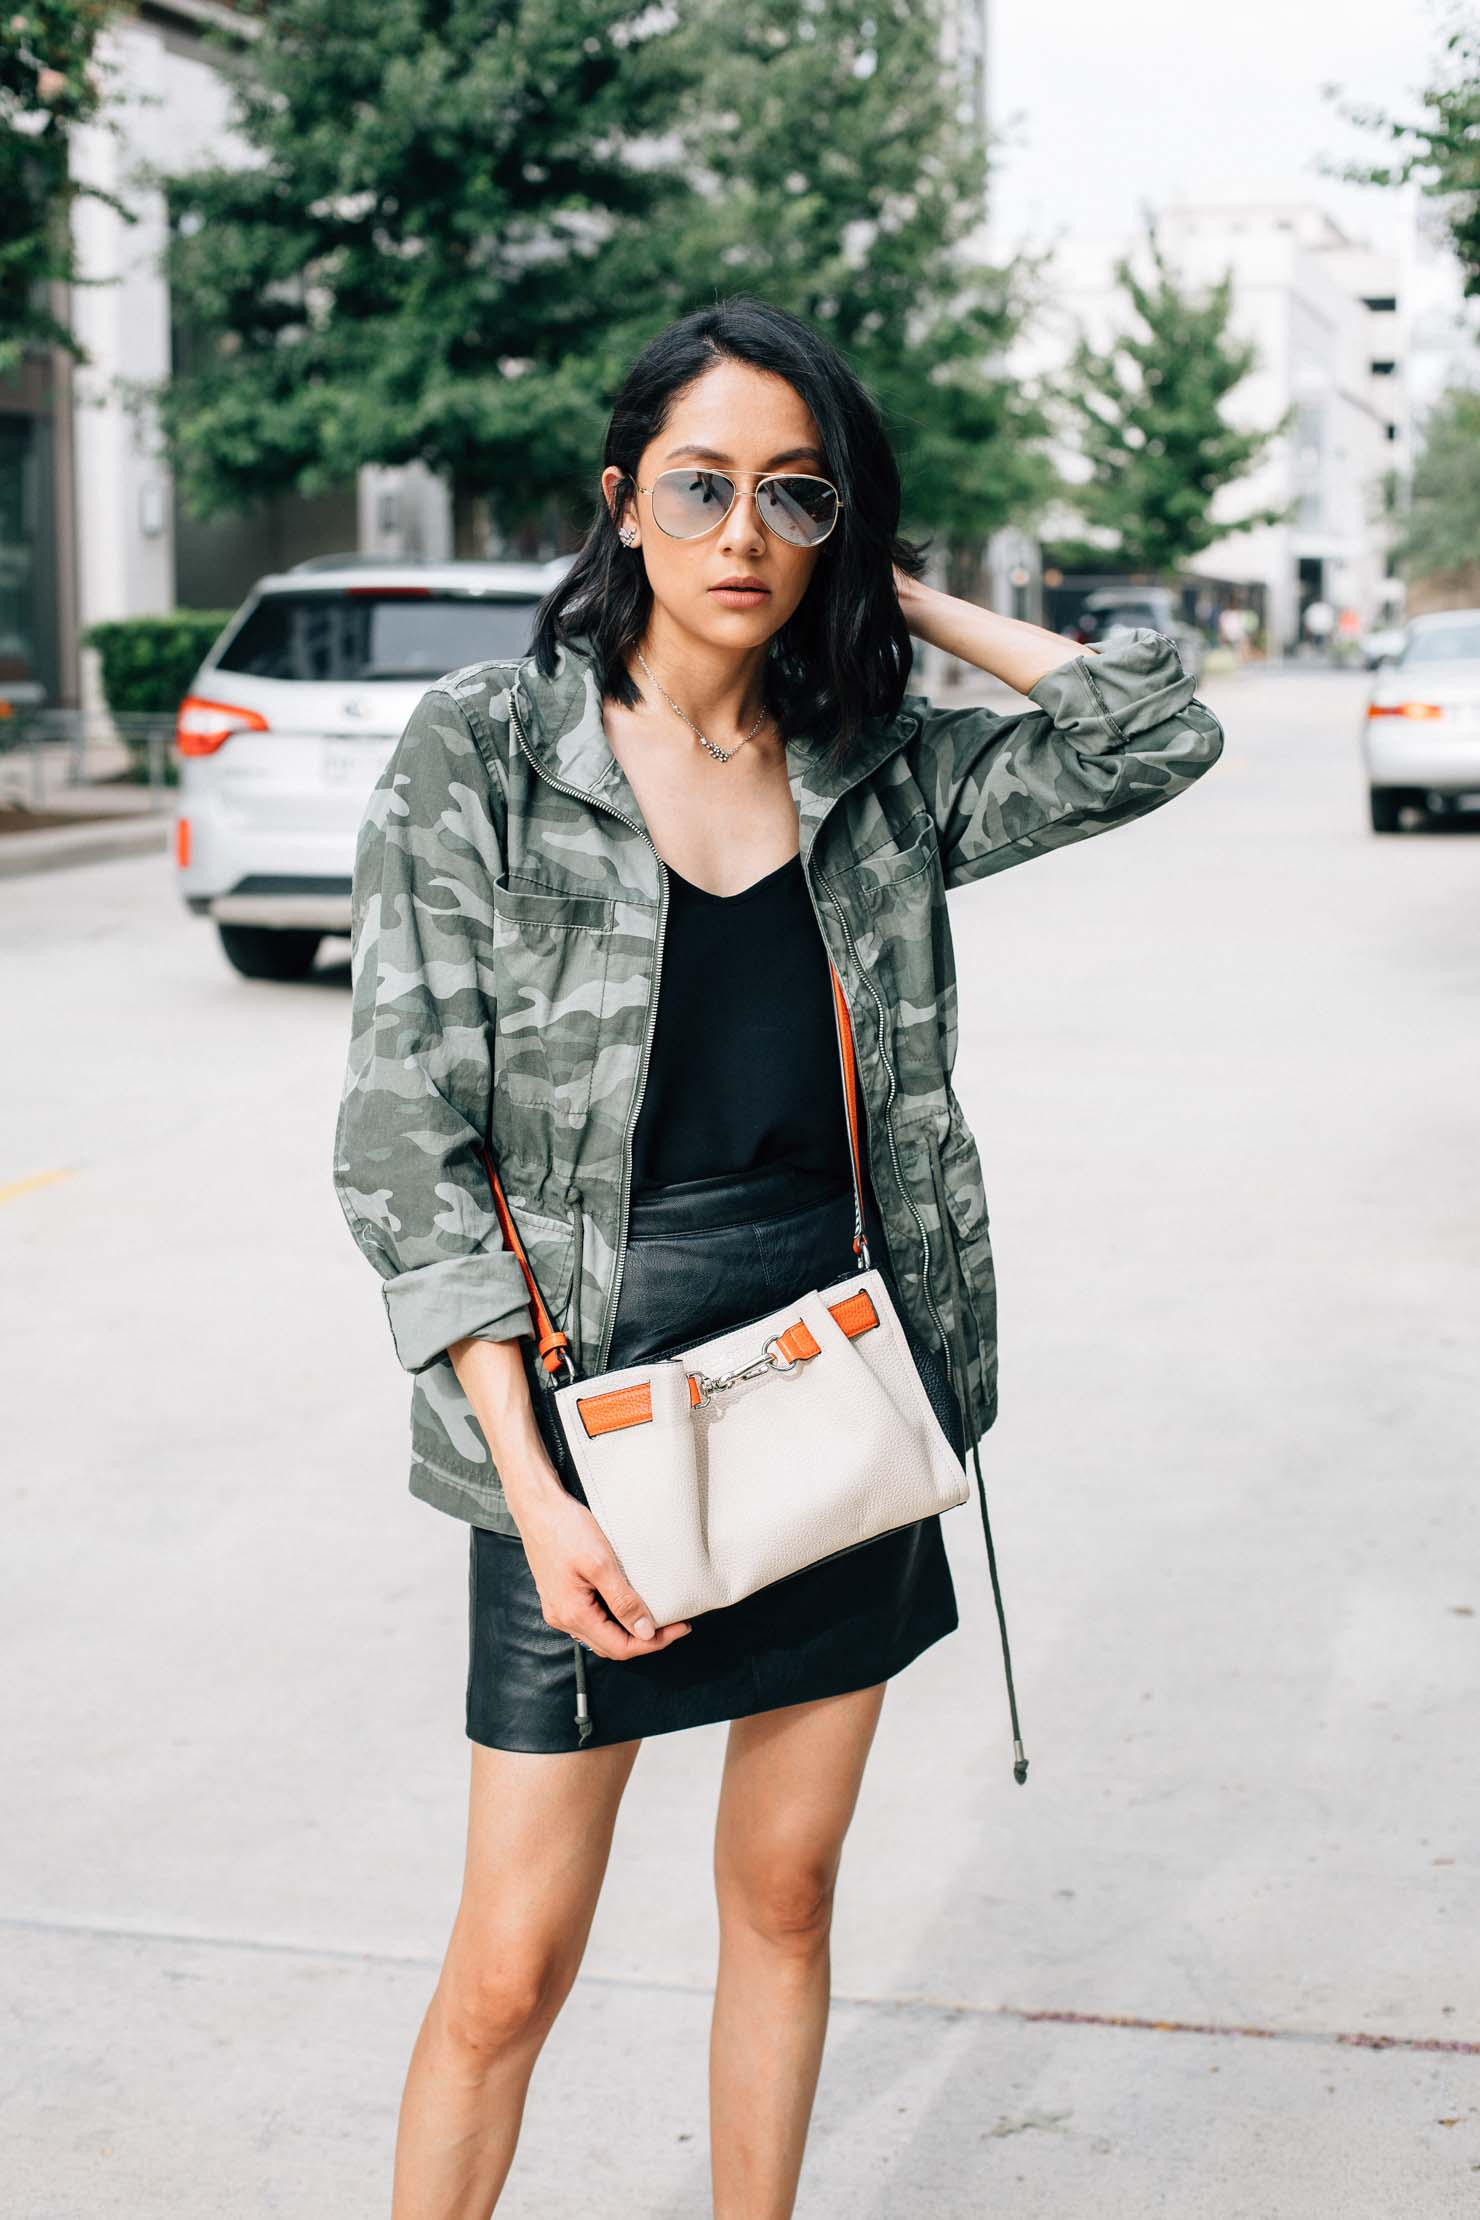 Camo jacket styled with leather mini skirt and Henri Bendel crossbody bag by Lilly Beltran from Daily Craving blog.